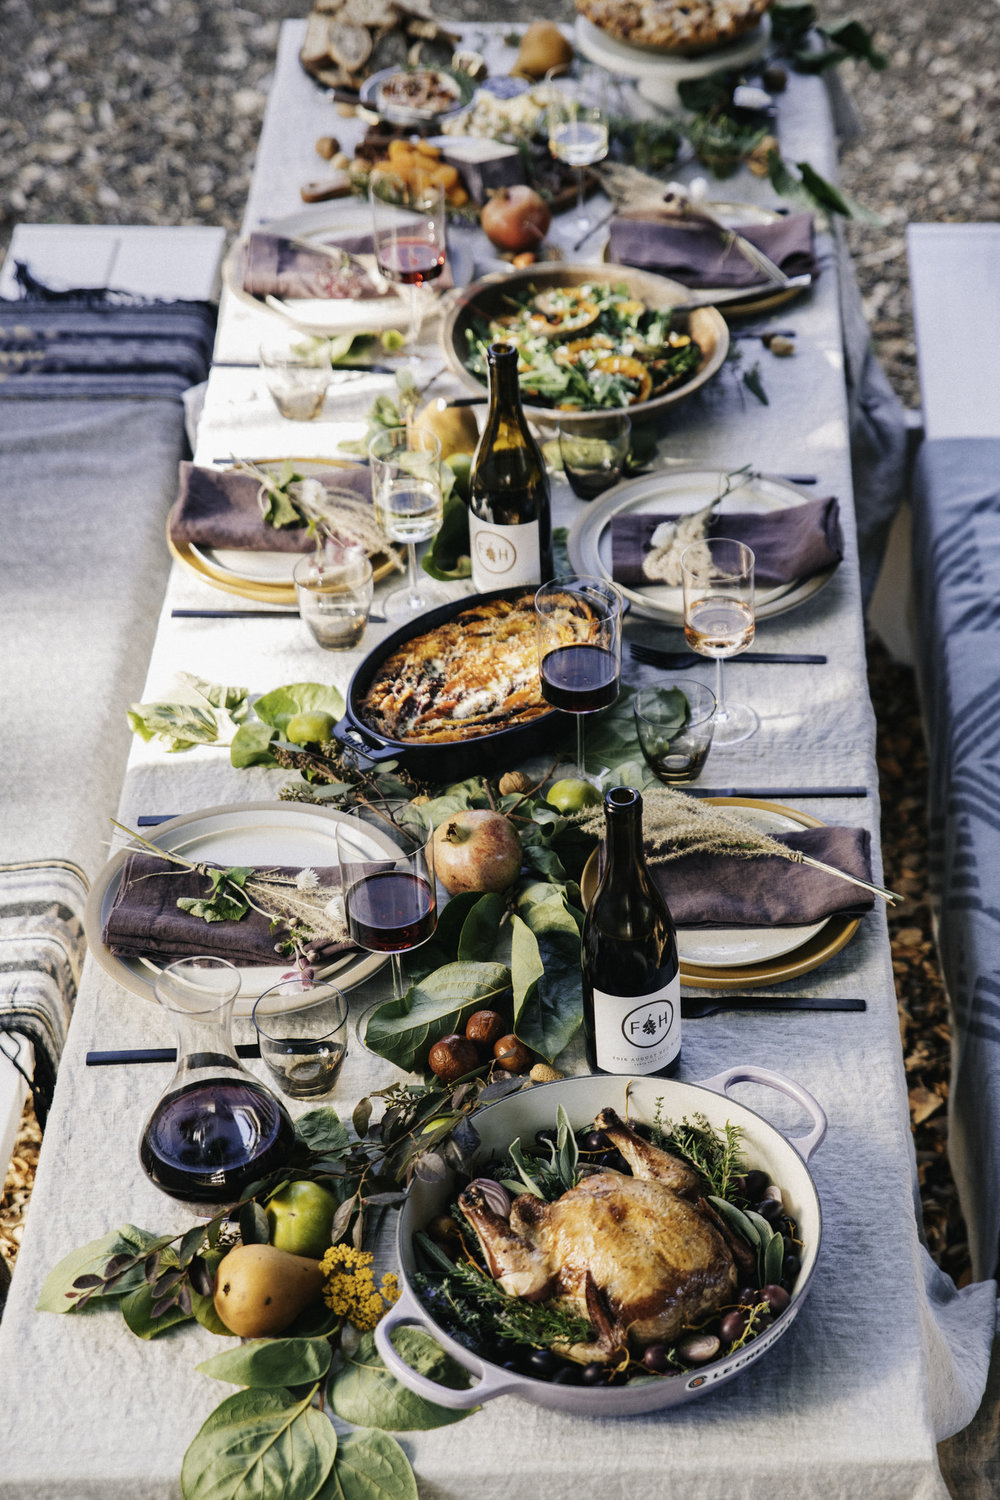 The complete fall harvest table. Photo: Silas Fallstich.